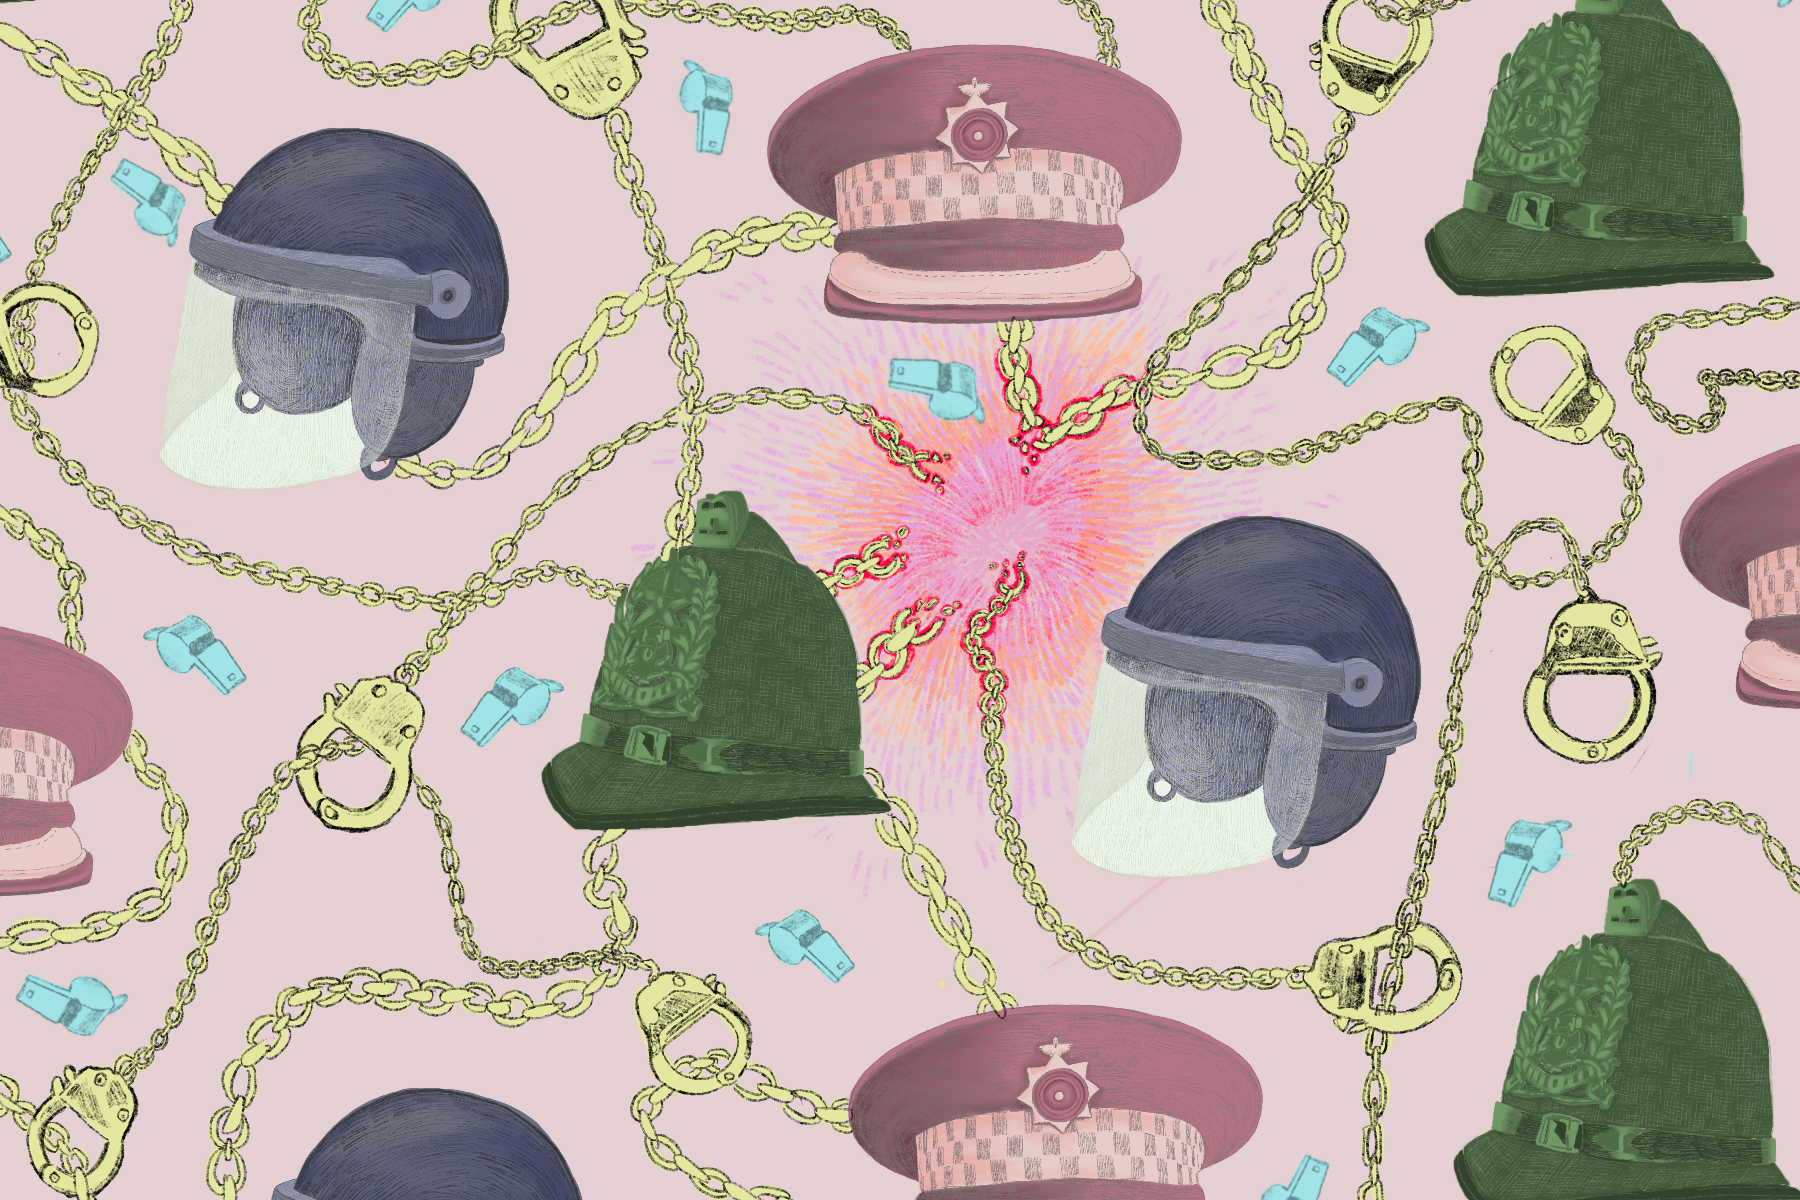 In article about on-campus policing, an illustration by Baz Pugmire of different police hats and helmets